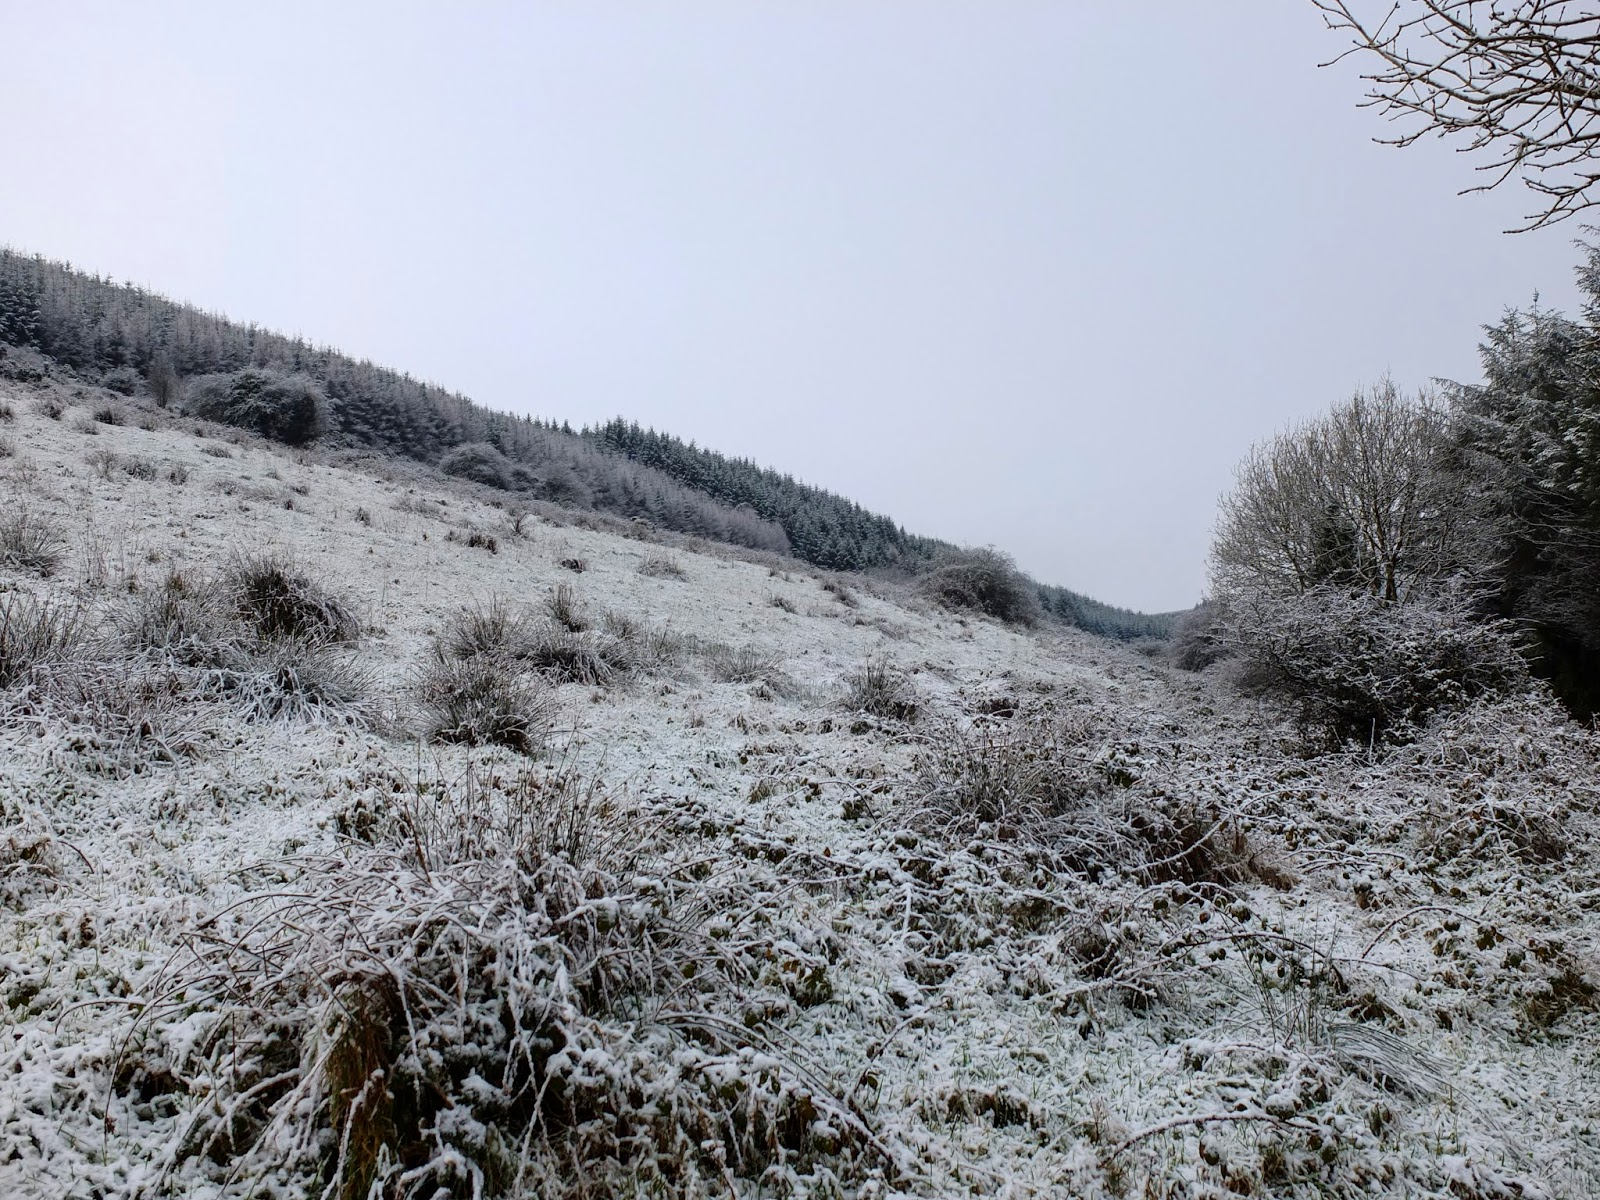 A hillside in Duhallow covered in snow captured in December 2017.